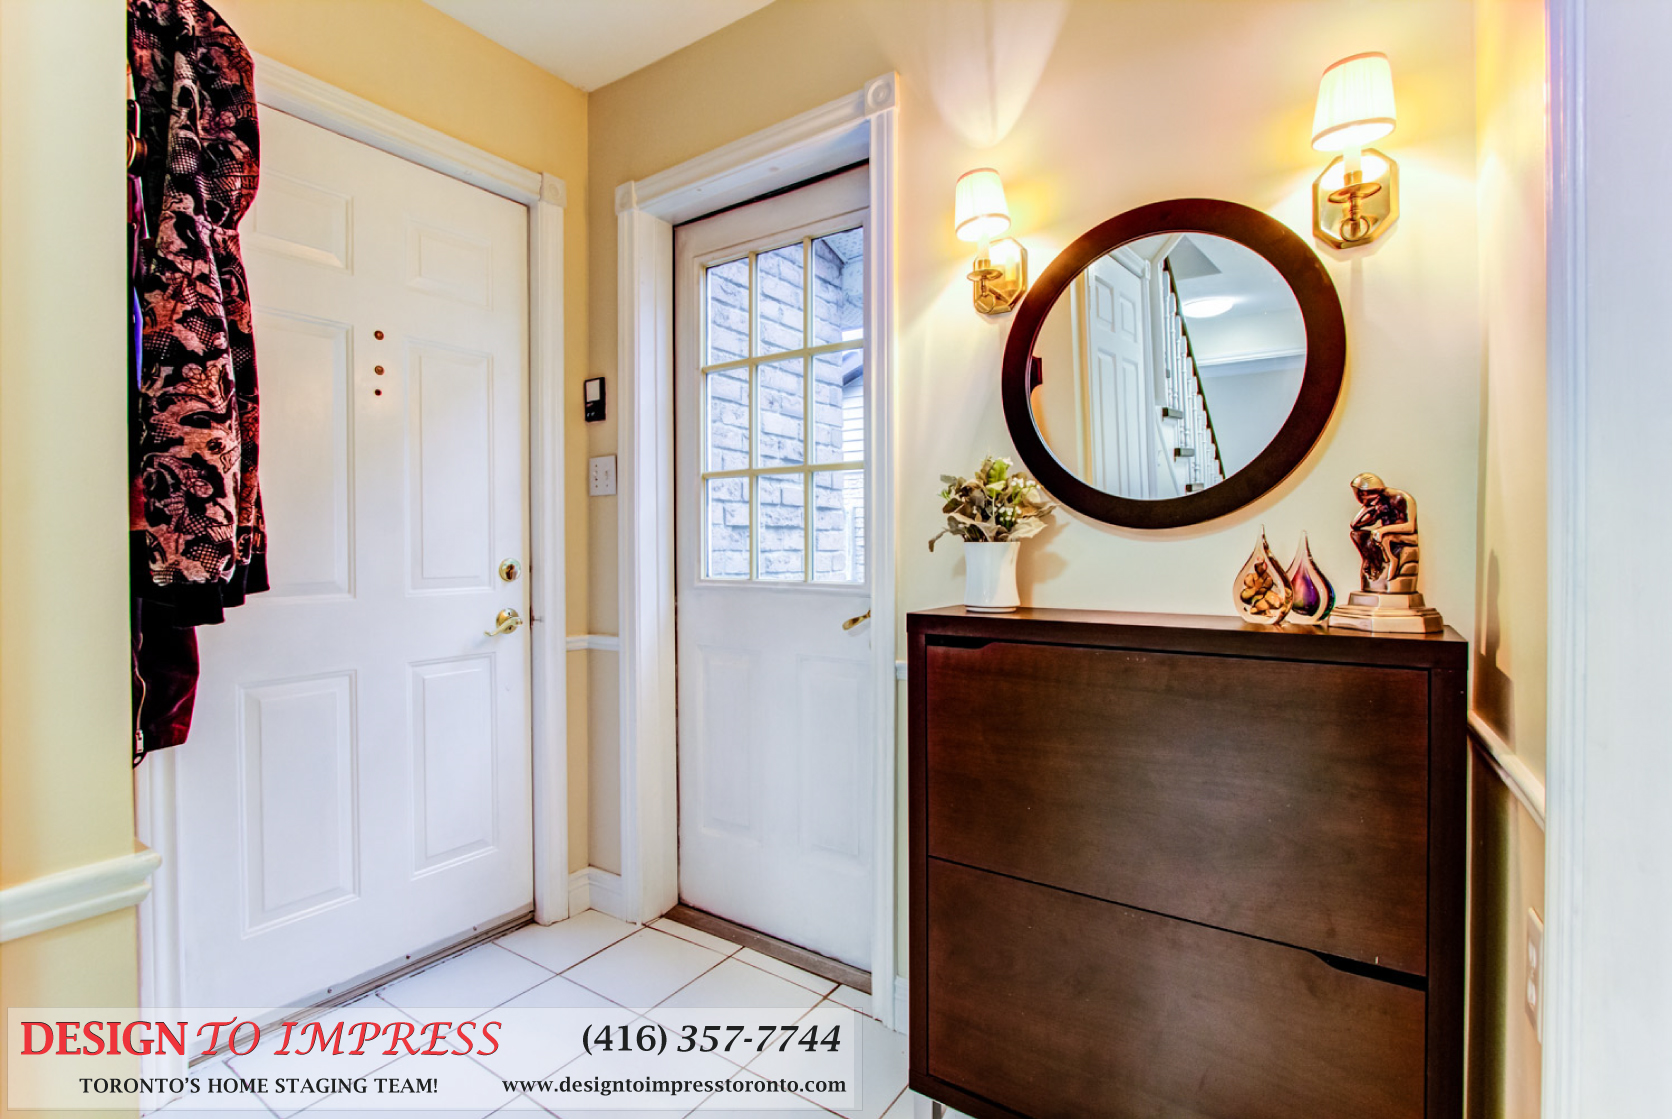 Backdoor, 133 Huntington Park, Thornhill Home Staging